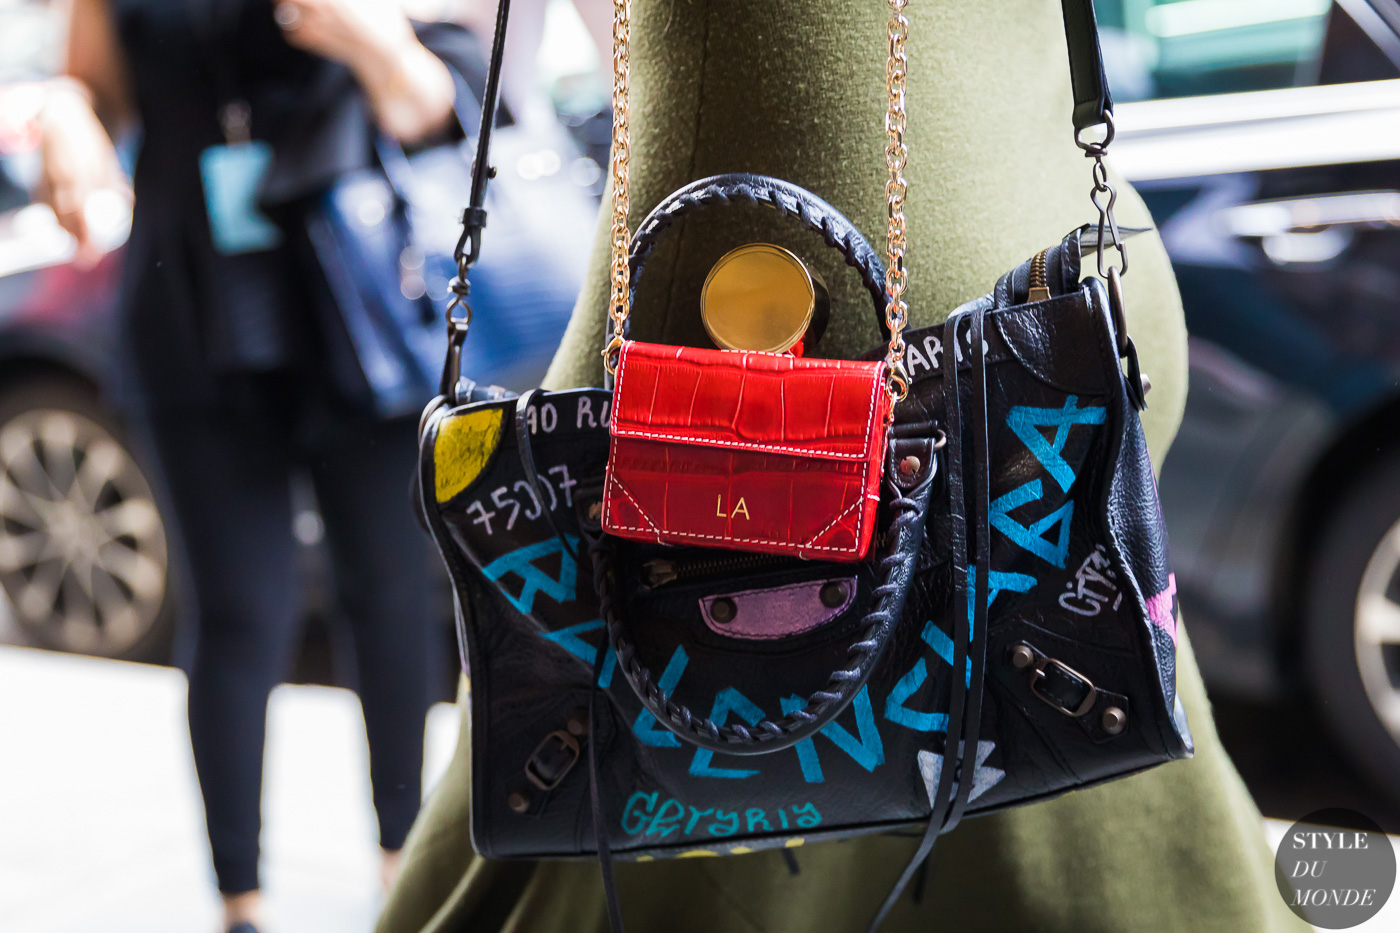 Balenciaga bag by STYLEDUMONDE Street Style Fashion Photography